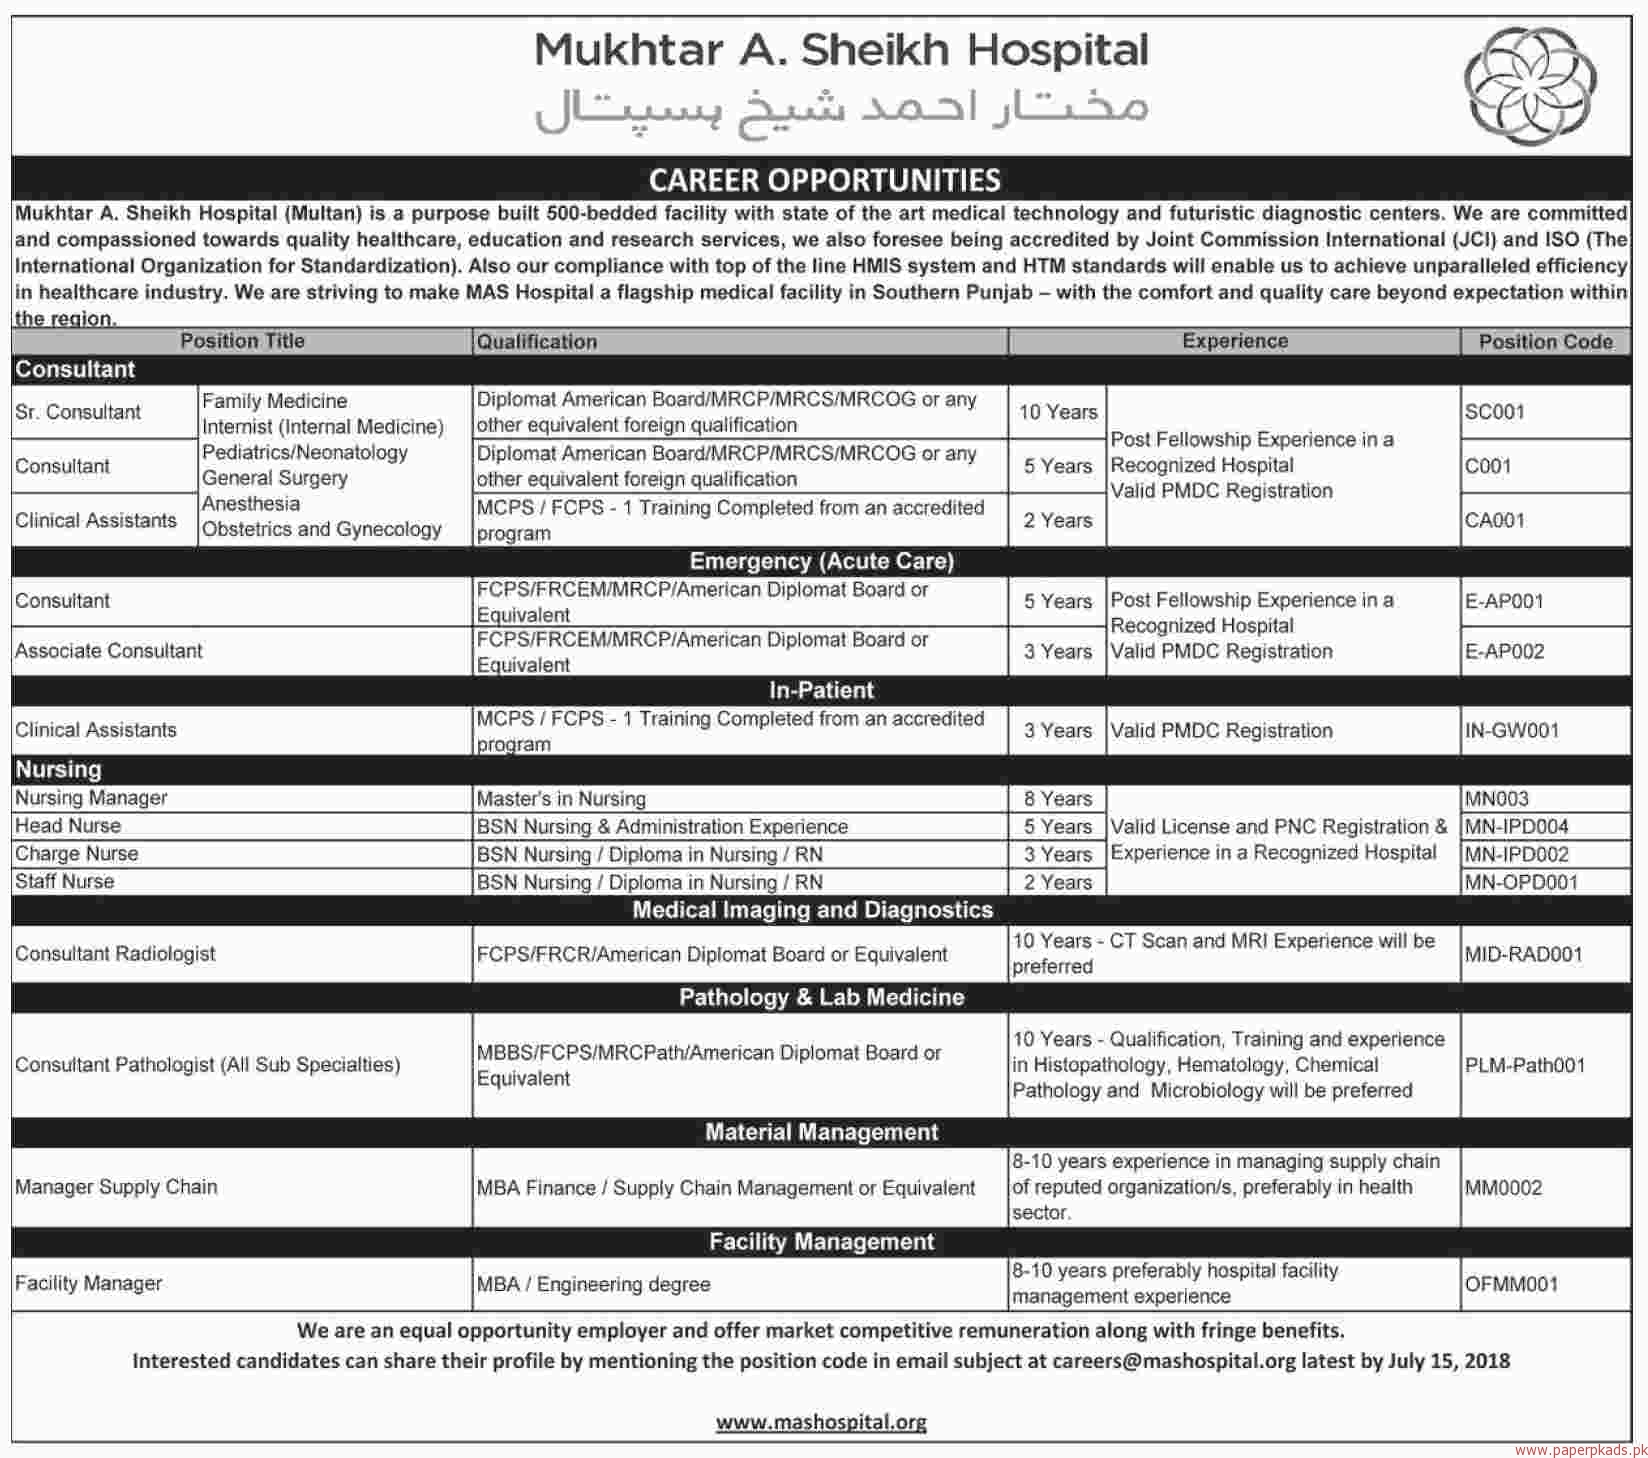 Mukhtar A Sheikh Hospital Jobs 2018 Latest